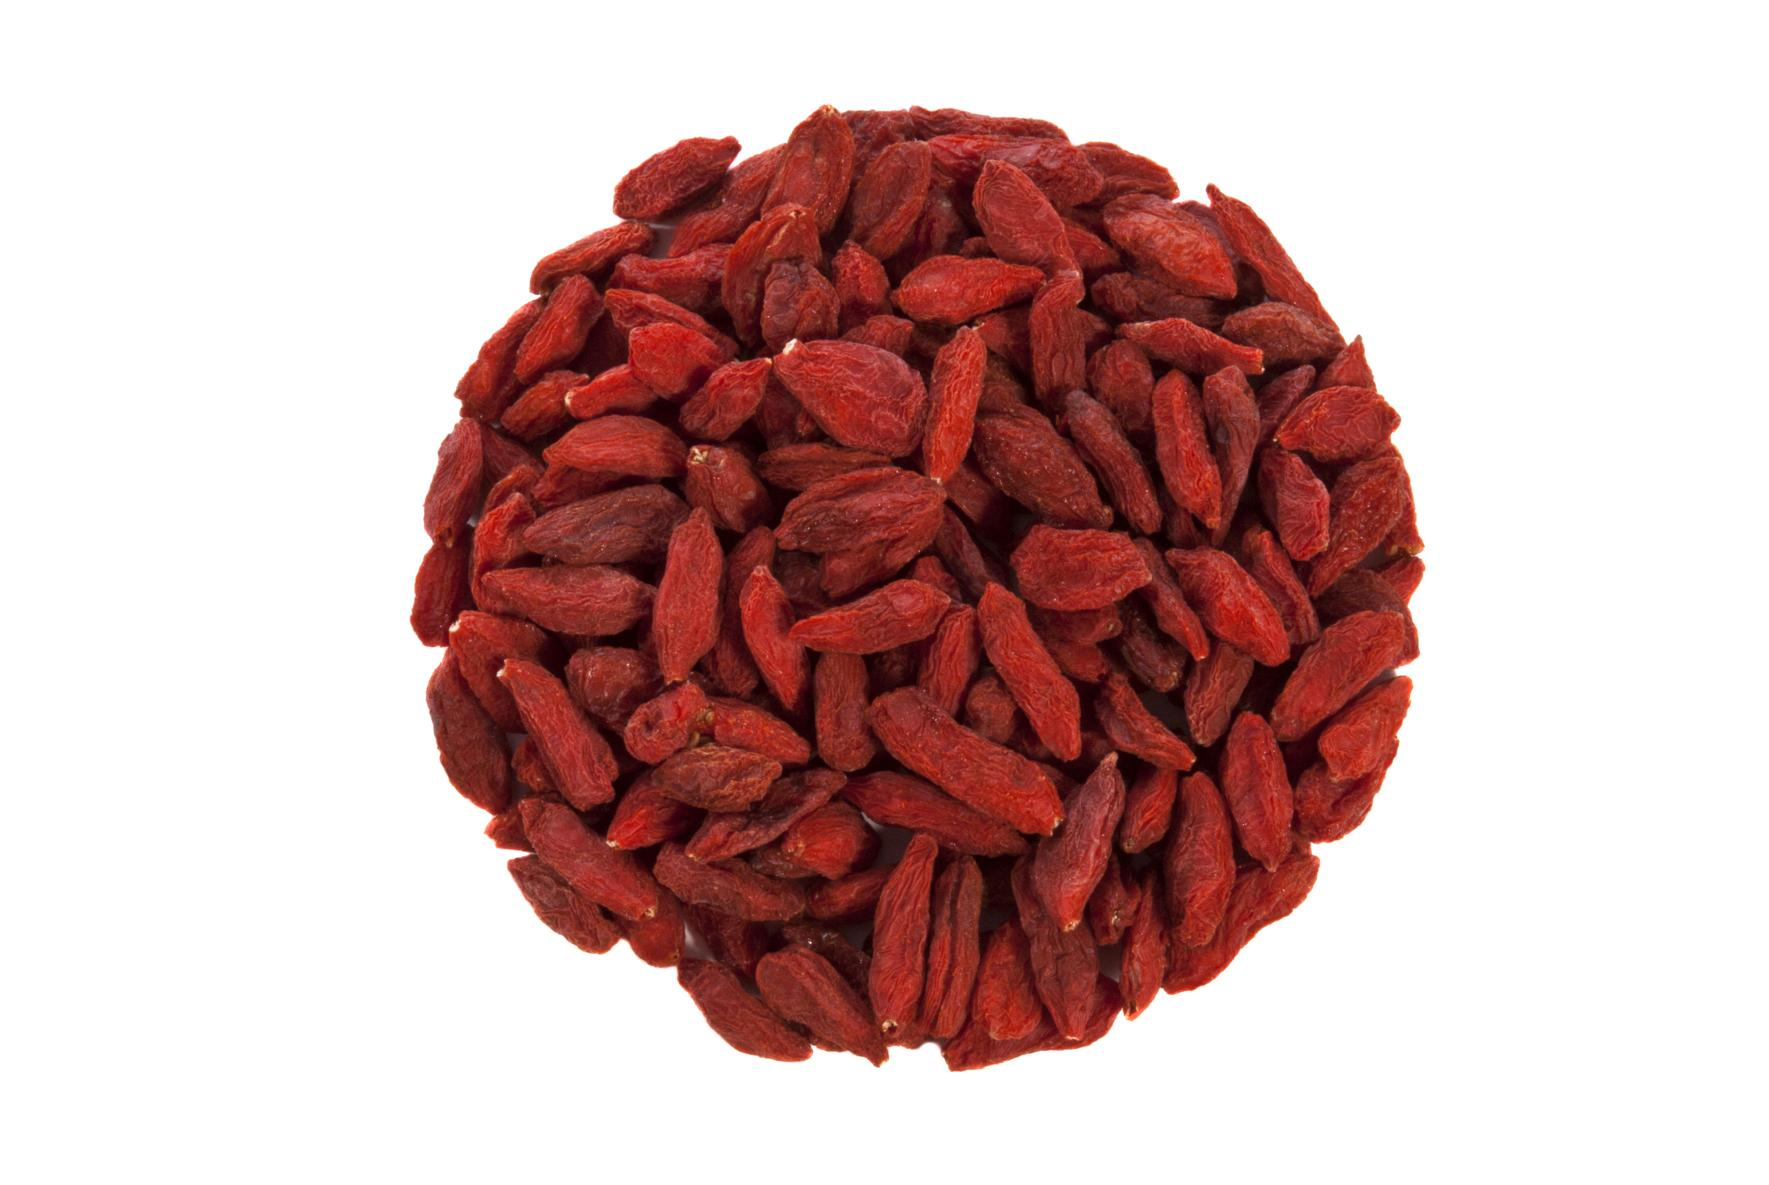 closeup of goji berries or wolfberries